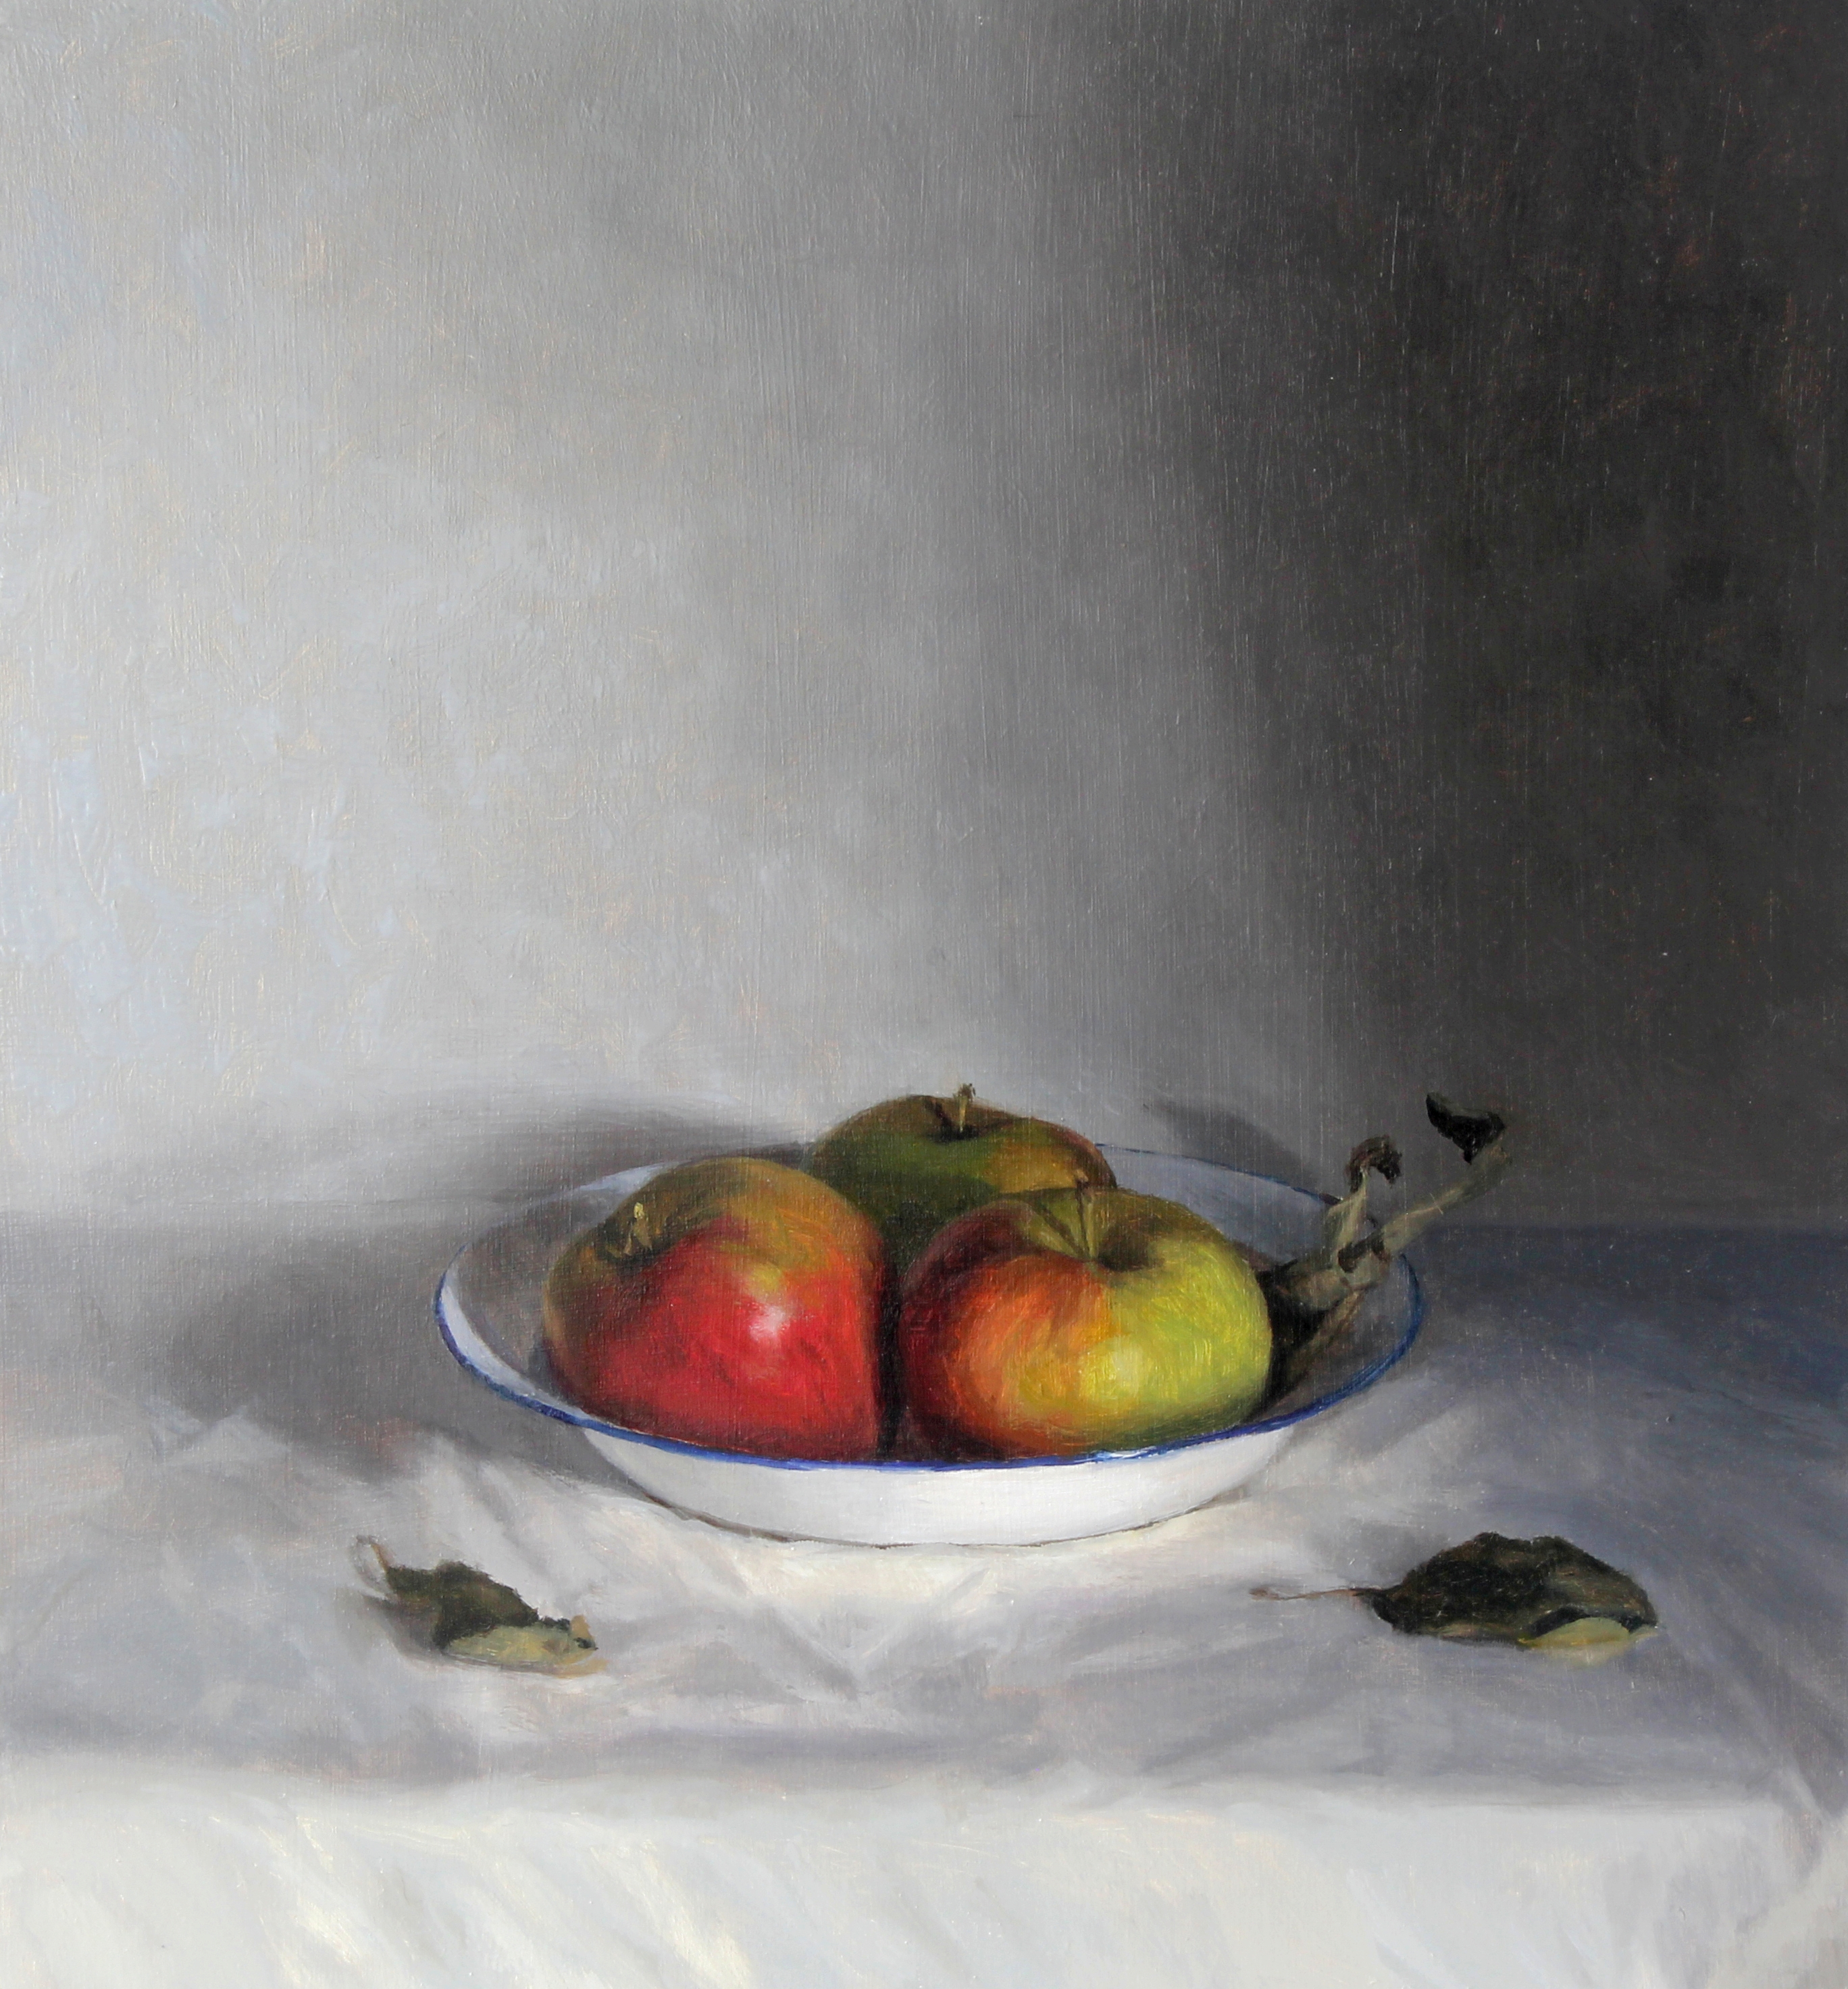 Apples in an Enamel Bowl